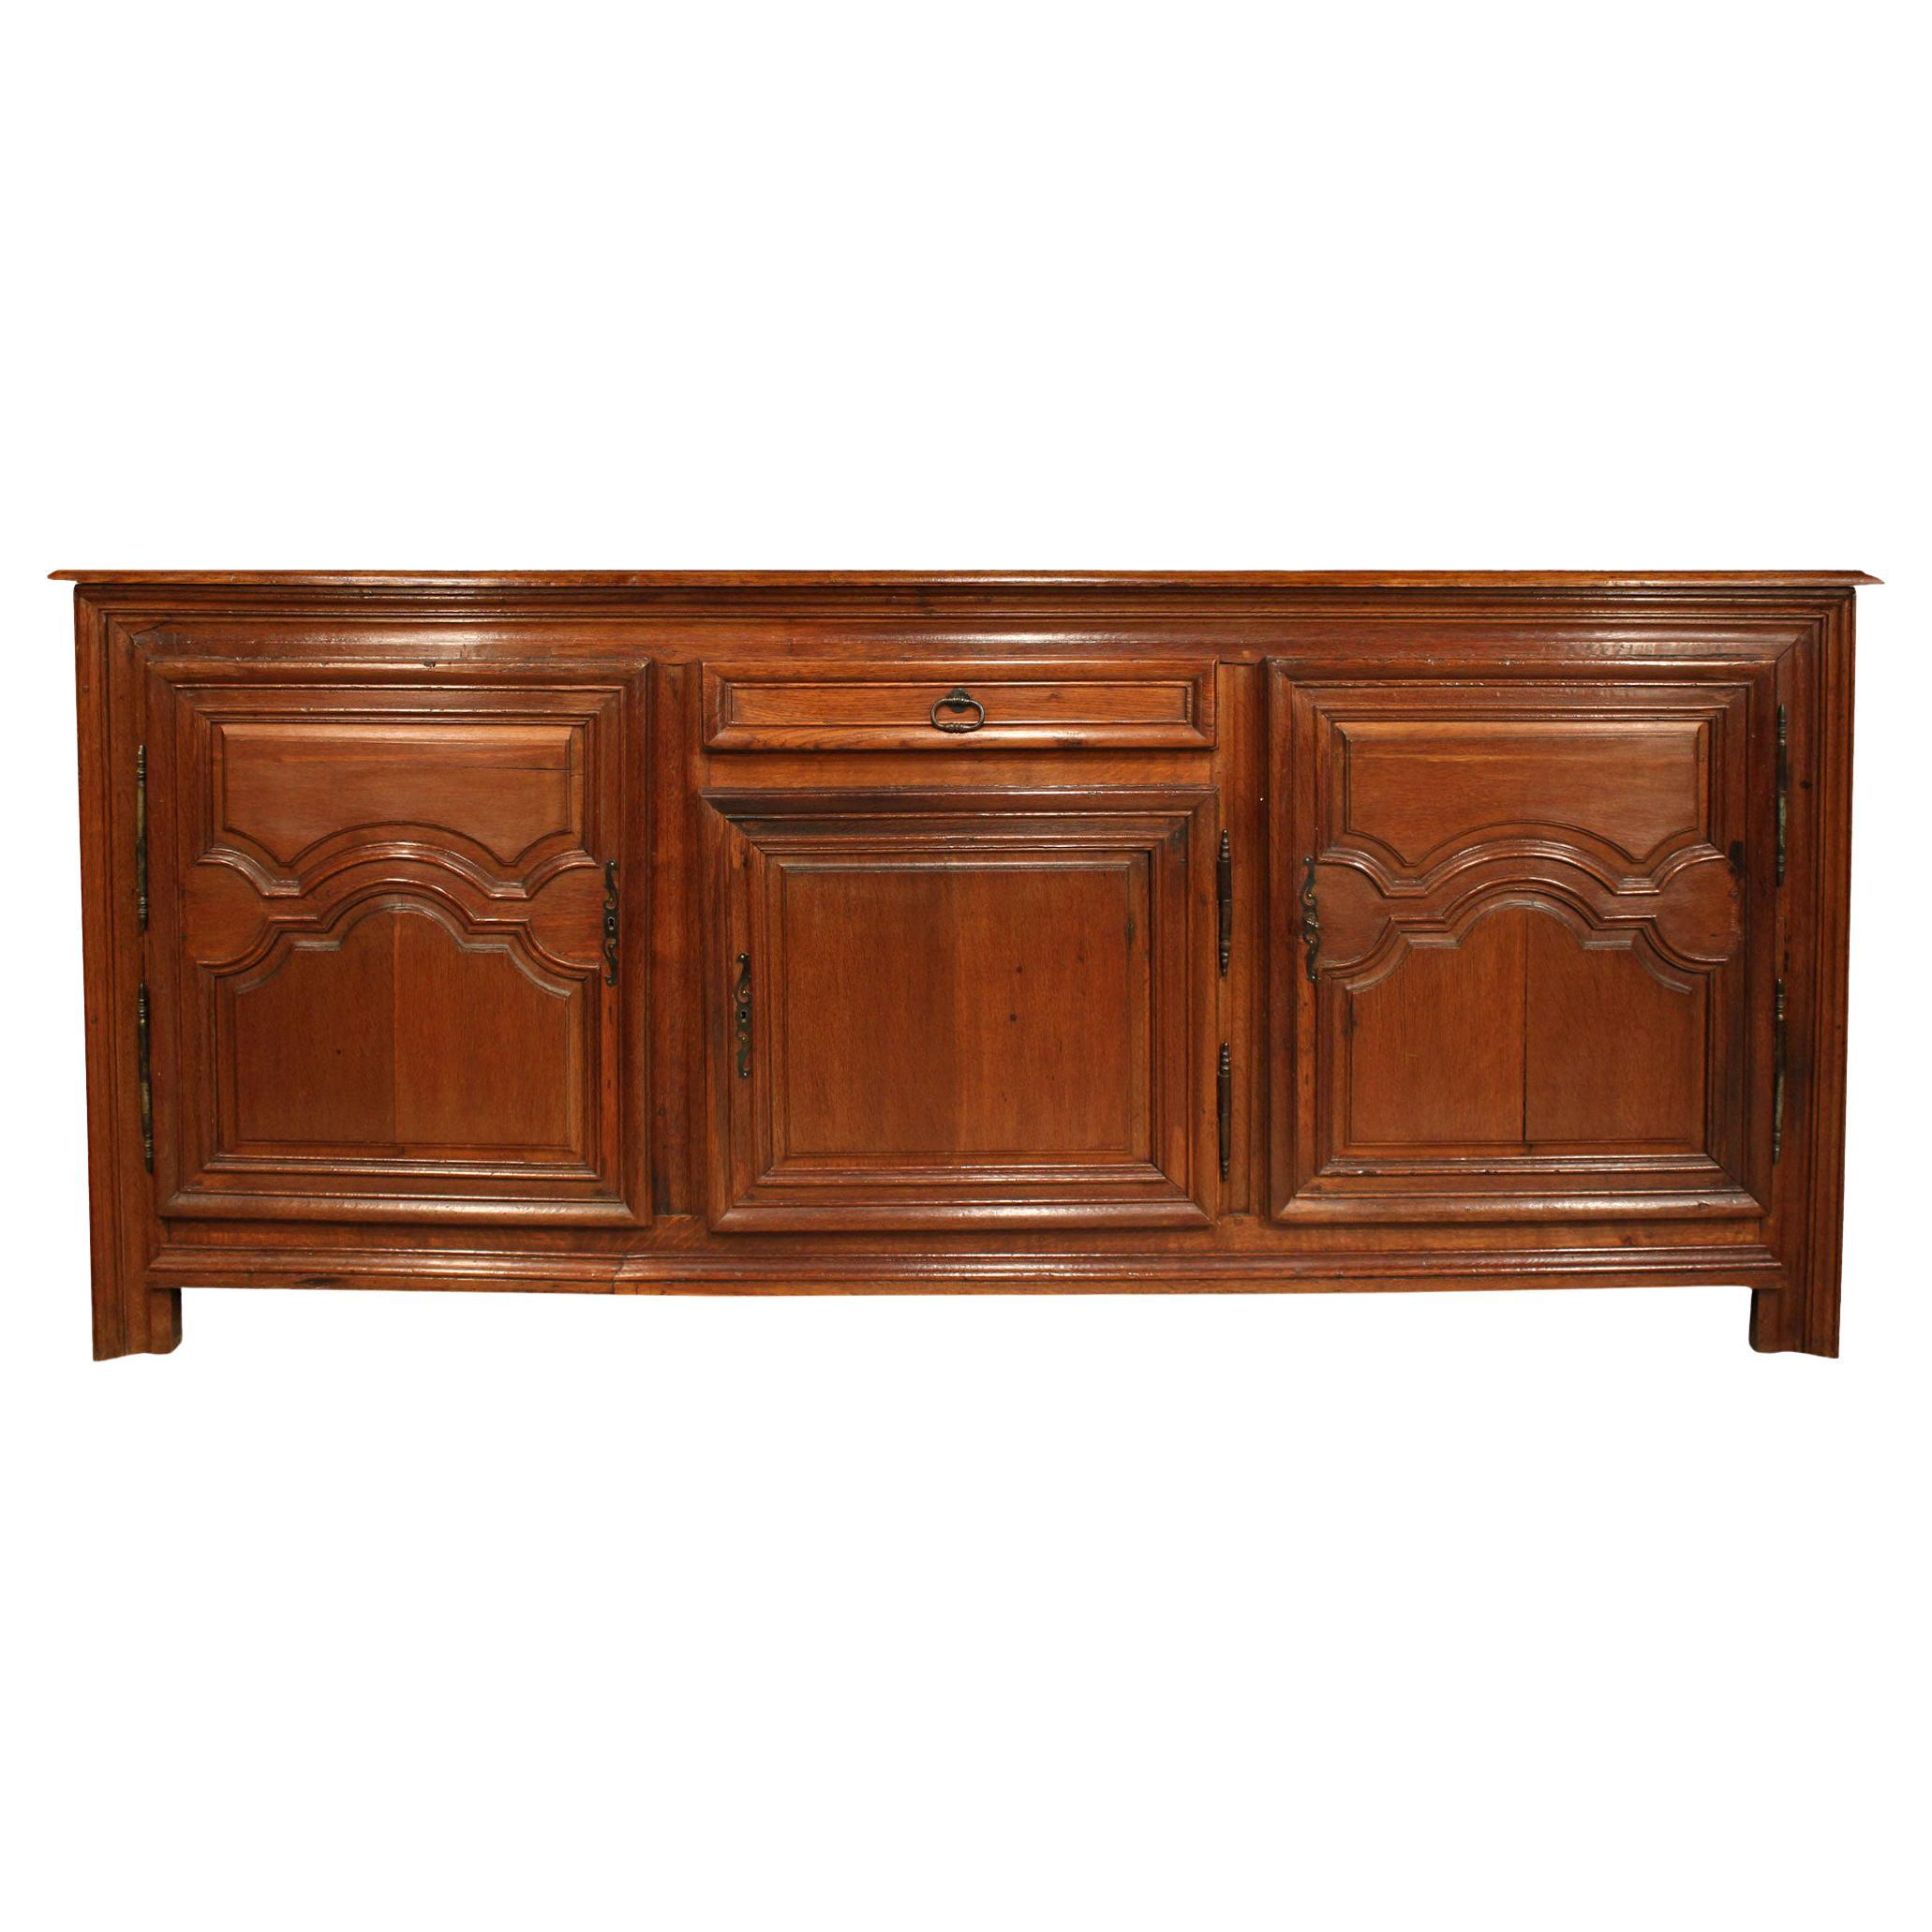 Country French 18th Century Honey Colored Oak Buffet